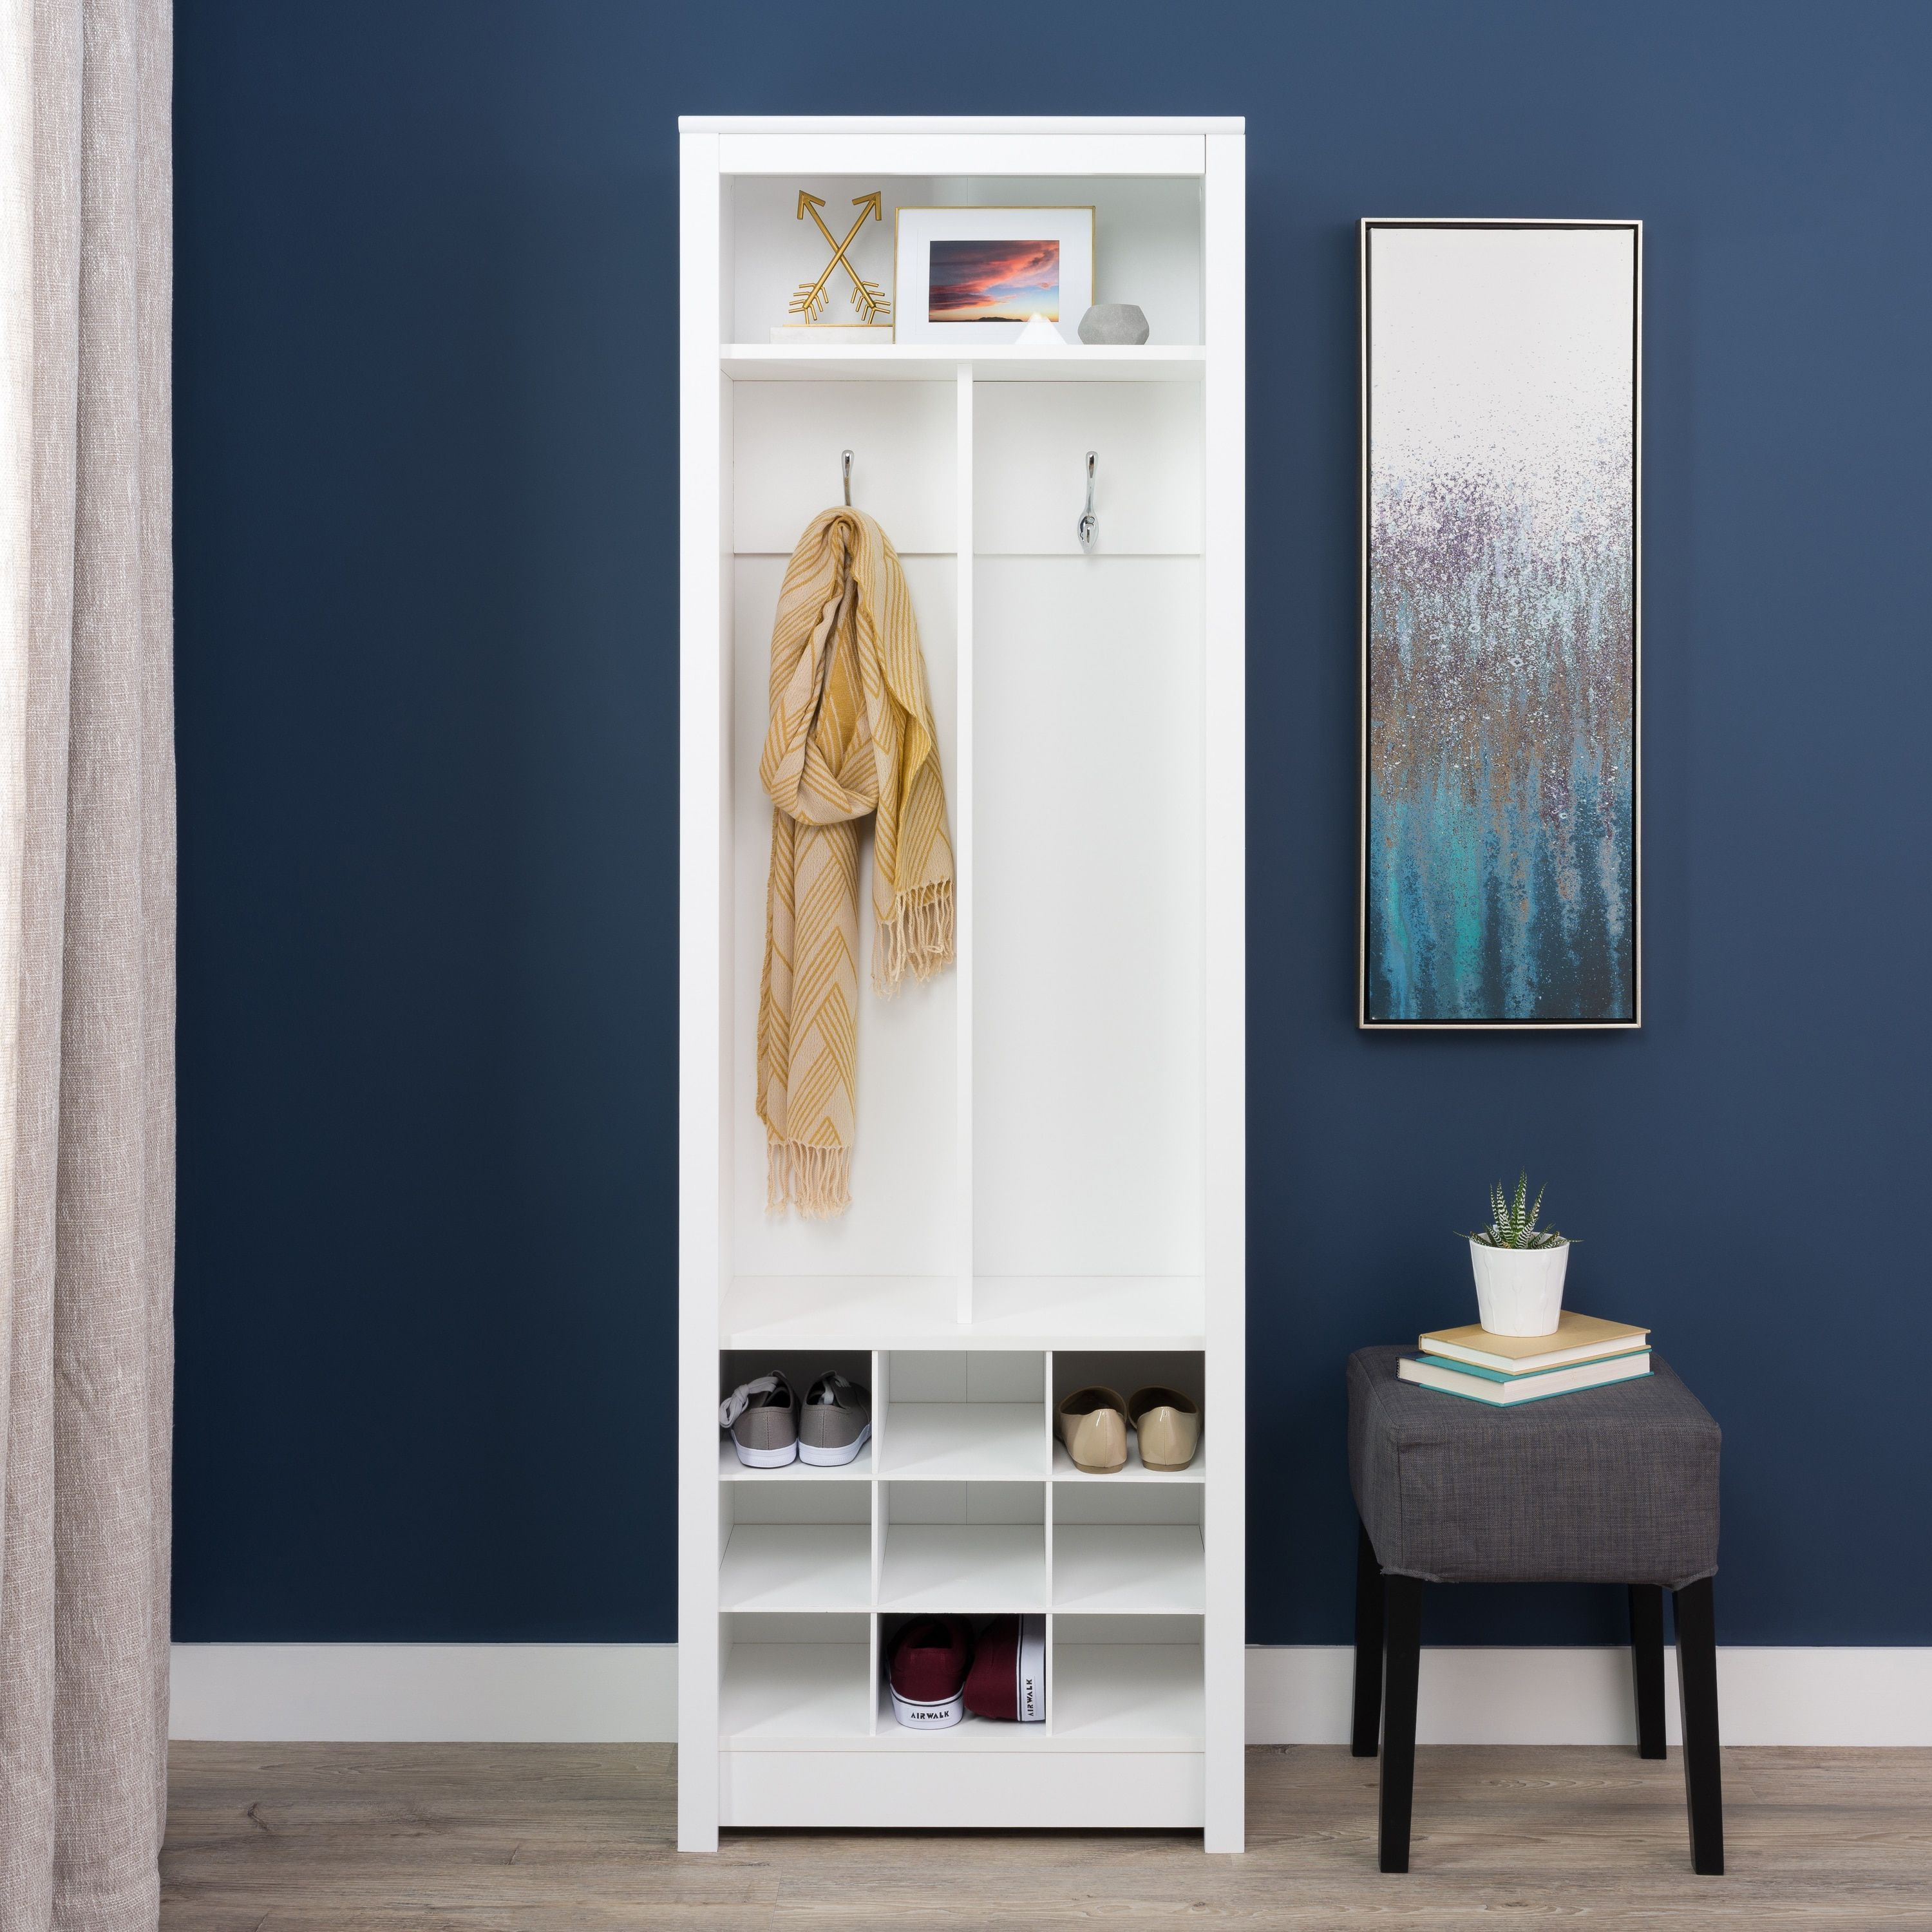 The Great And Affordable Diy Shoe Rack That You Can Easily Make In Your Home 10ideas Shoes Entryway Organization Entryway Storage Cabinet Entryway Storage